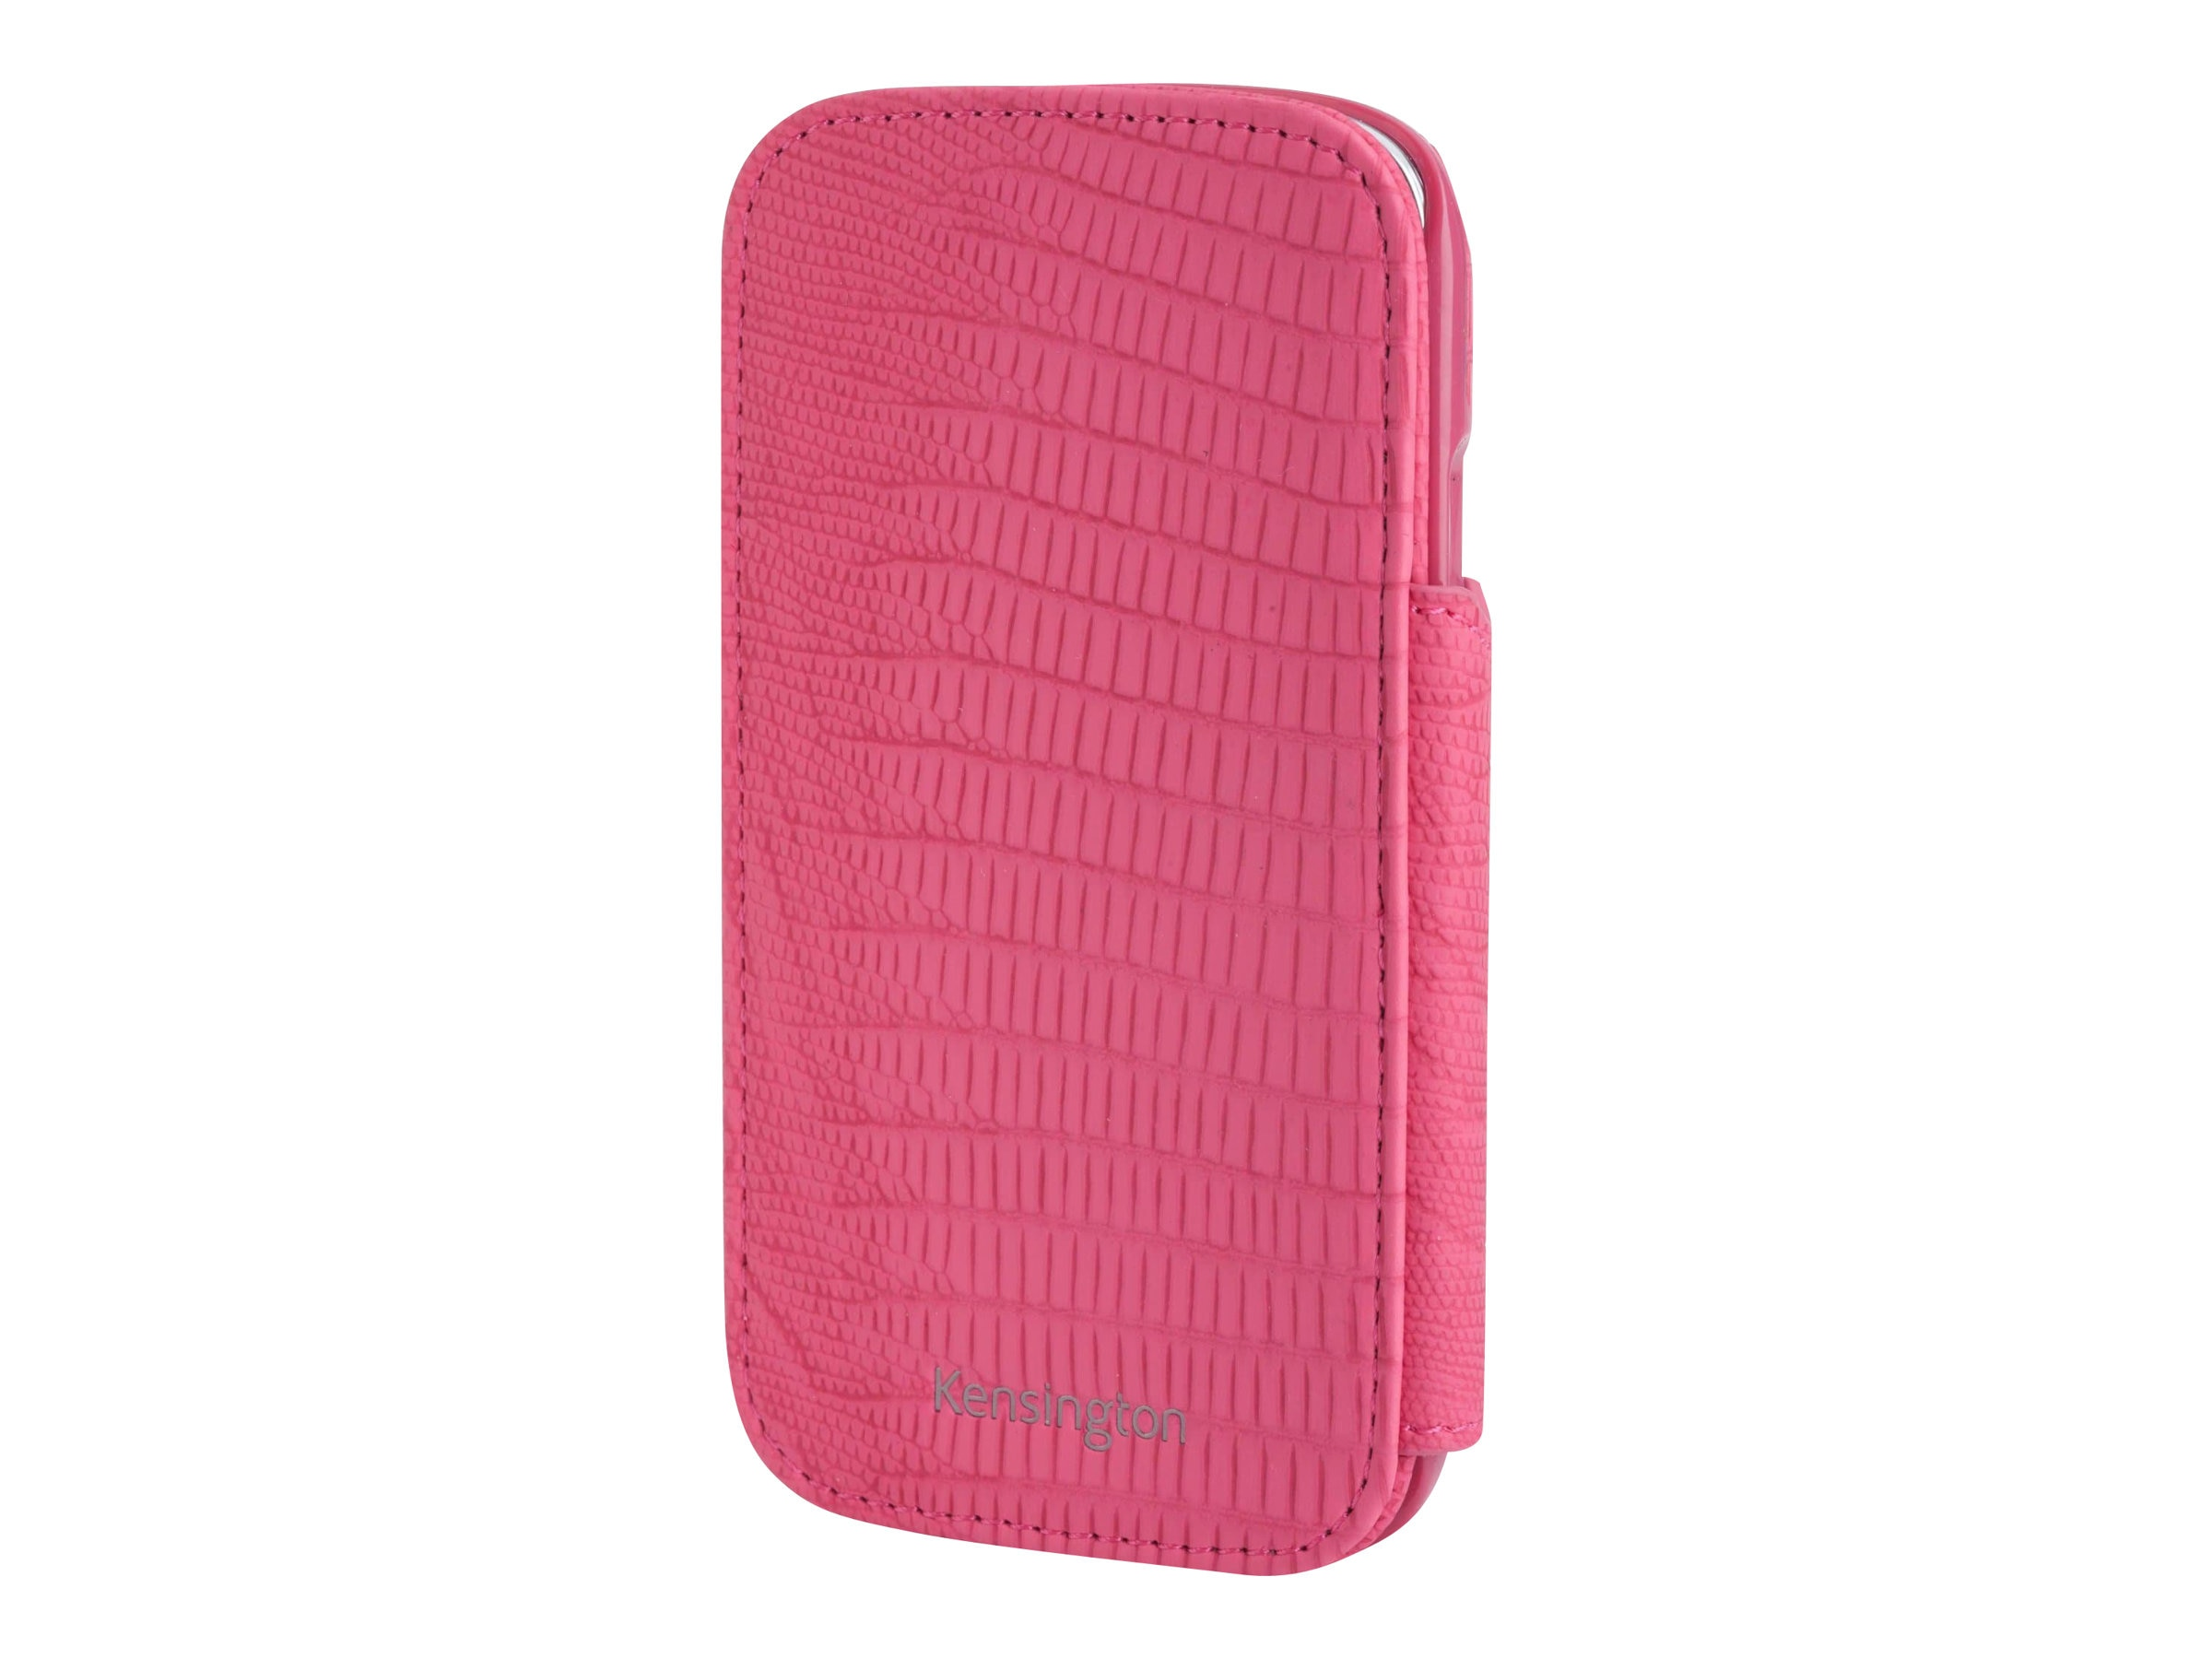 Kensington Portafolio Duo Wallet for Samsung Galaxy S III, Pink, K39614WW